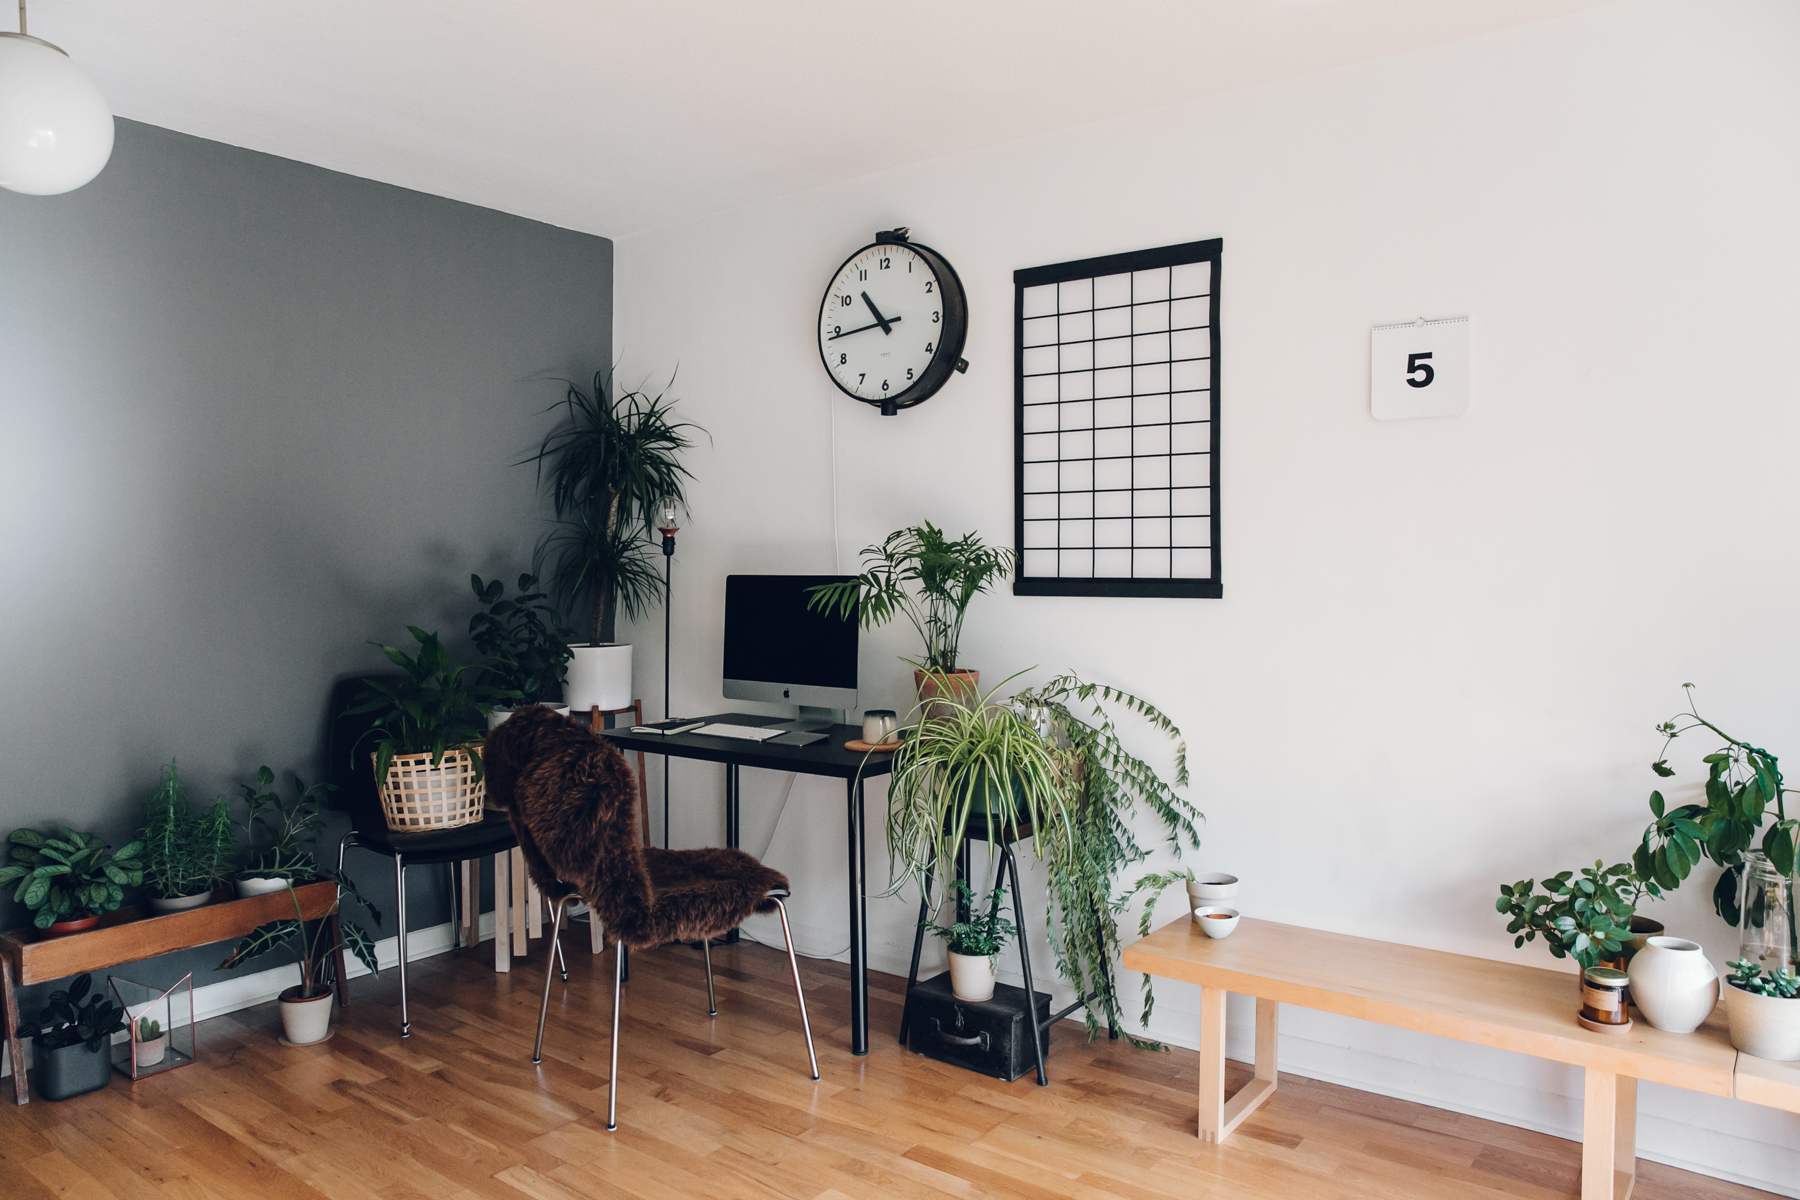 Most furniture from  IKEA